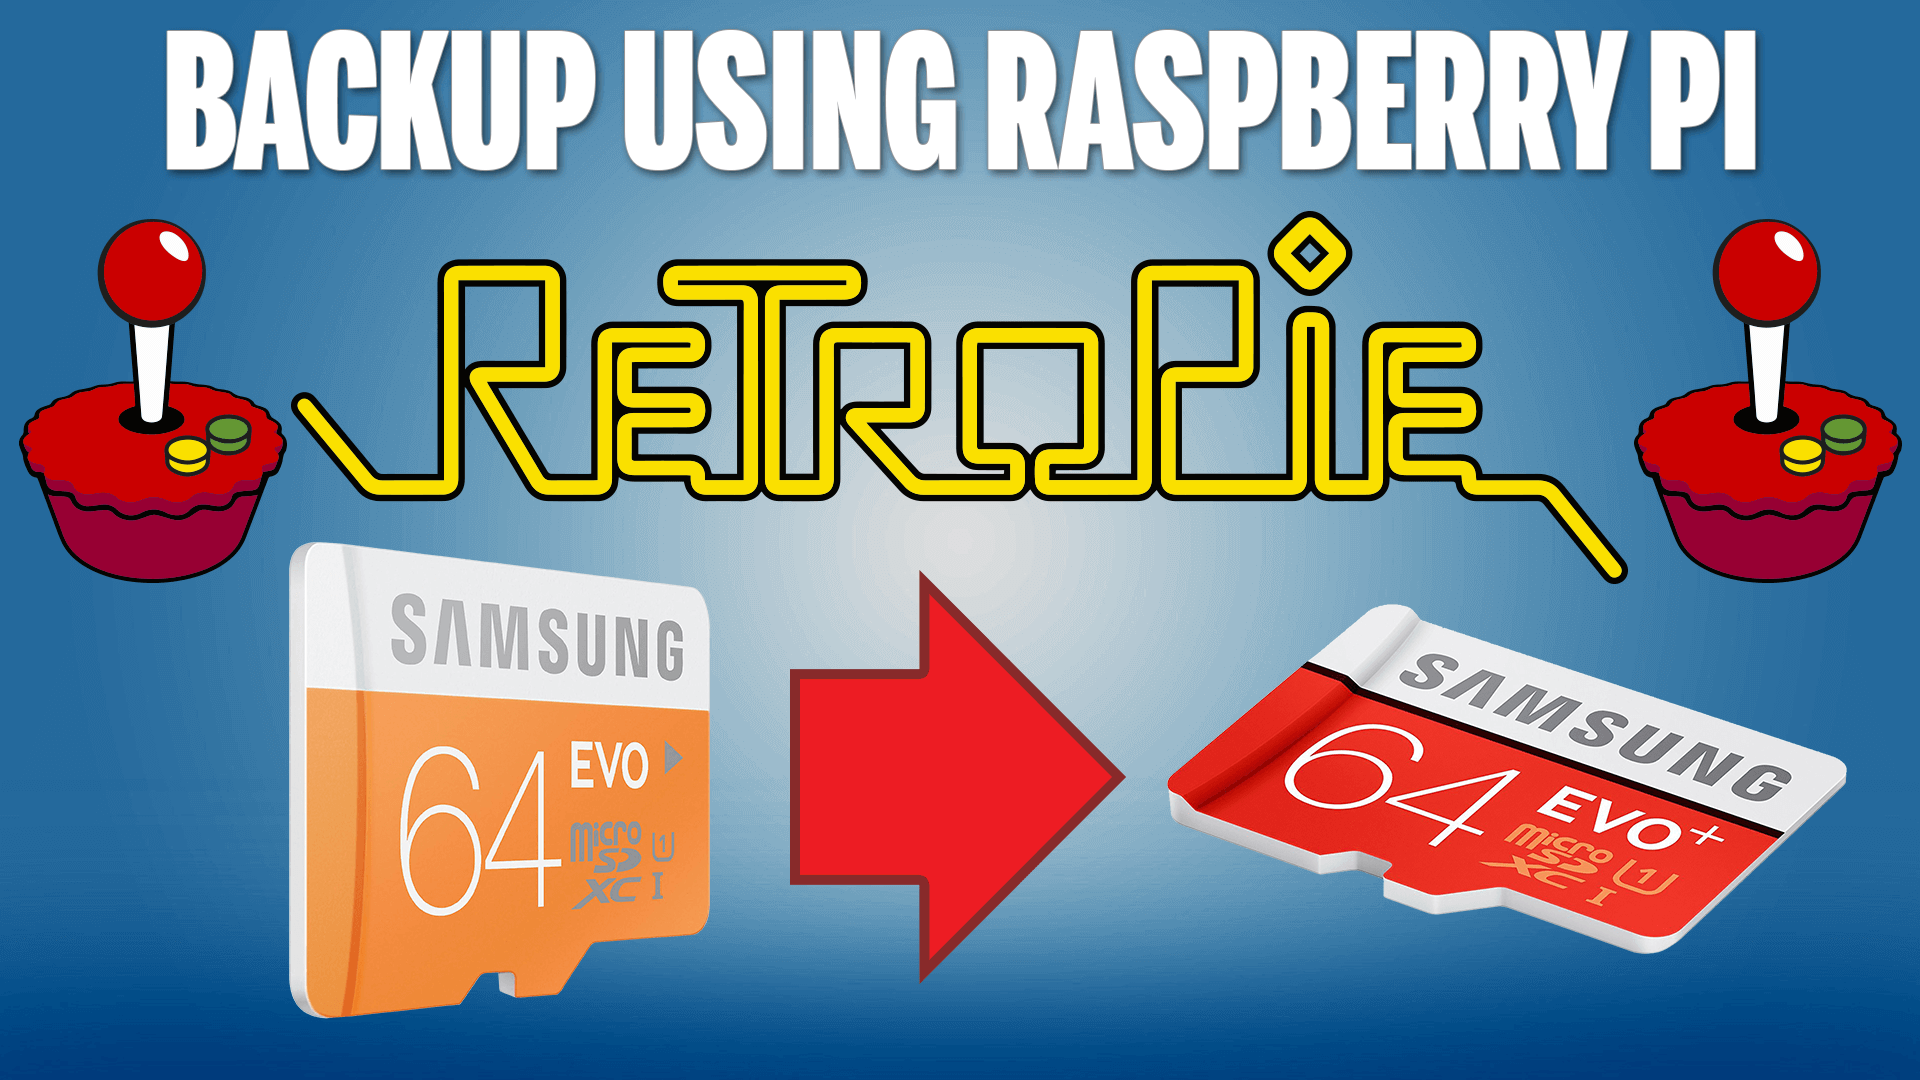 How To Clone a Retropie SD Card Setup on a Raspberry Pi